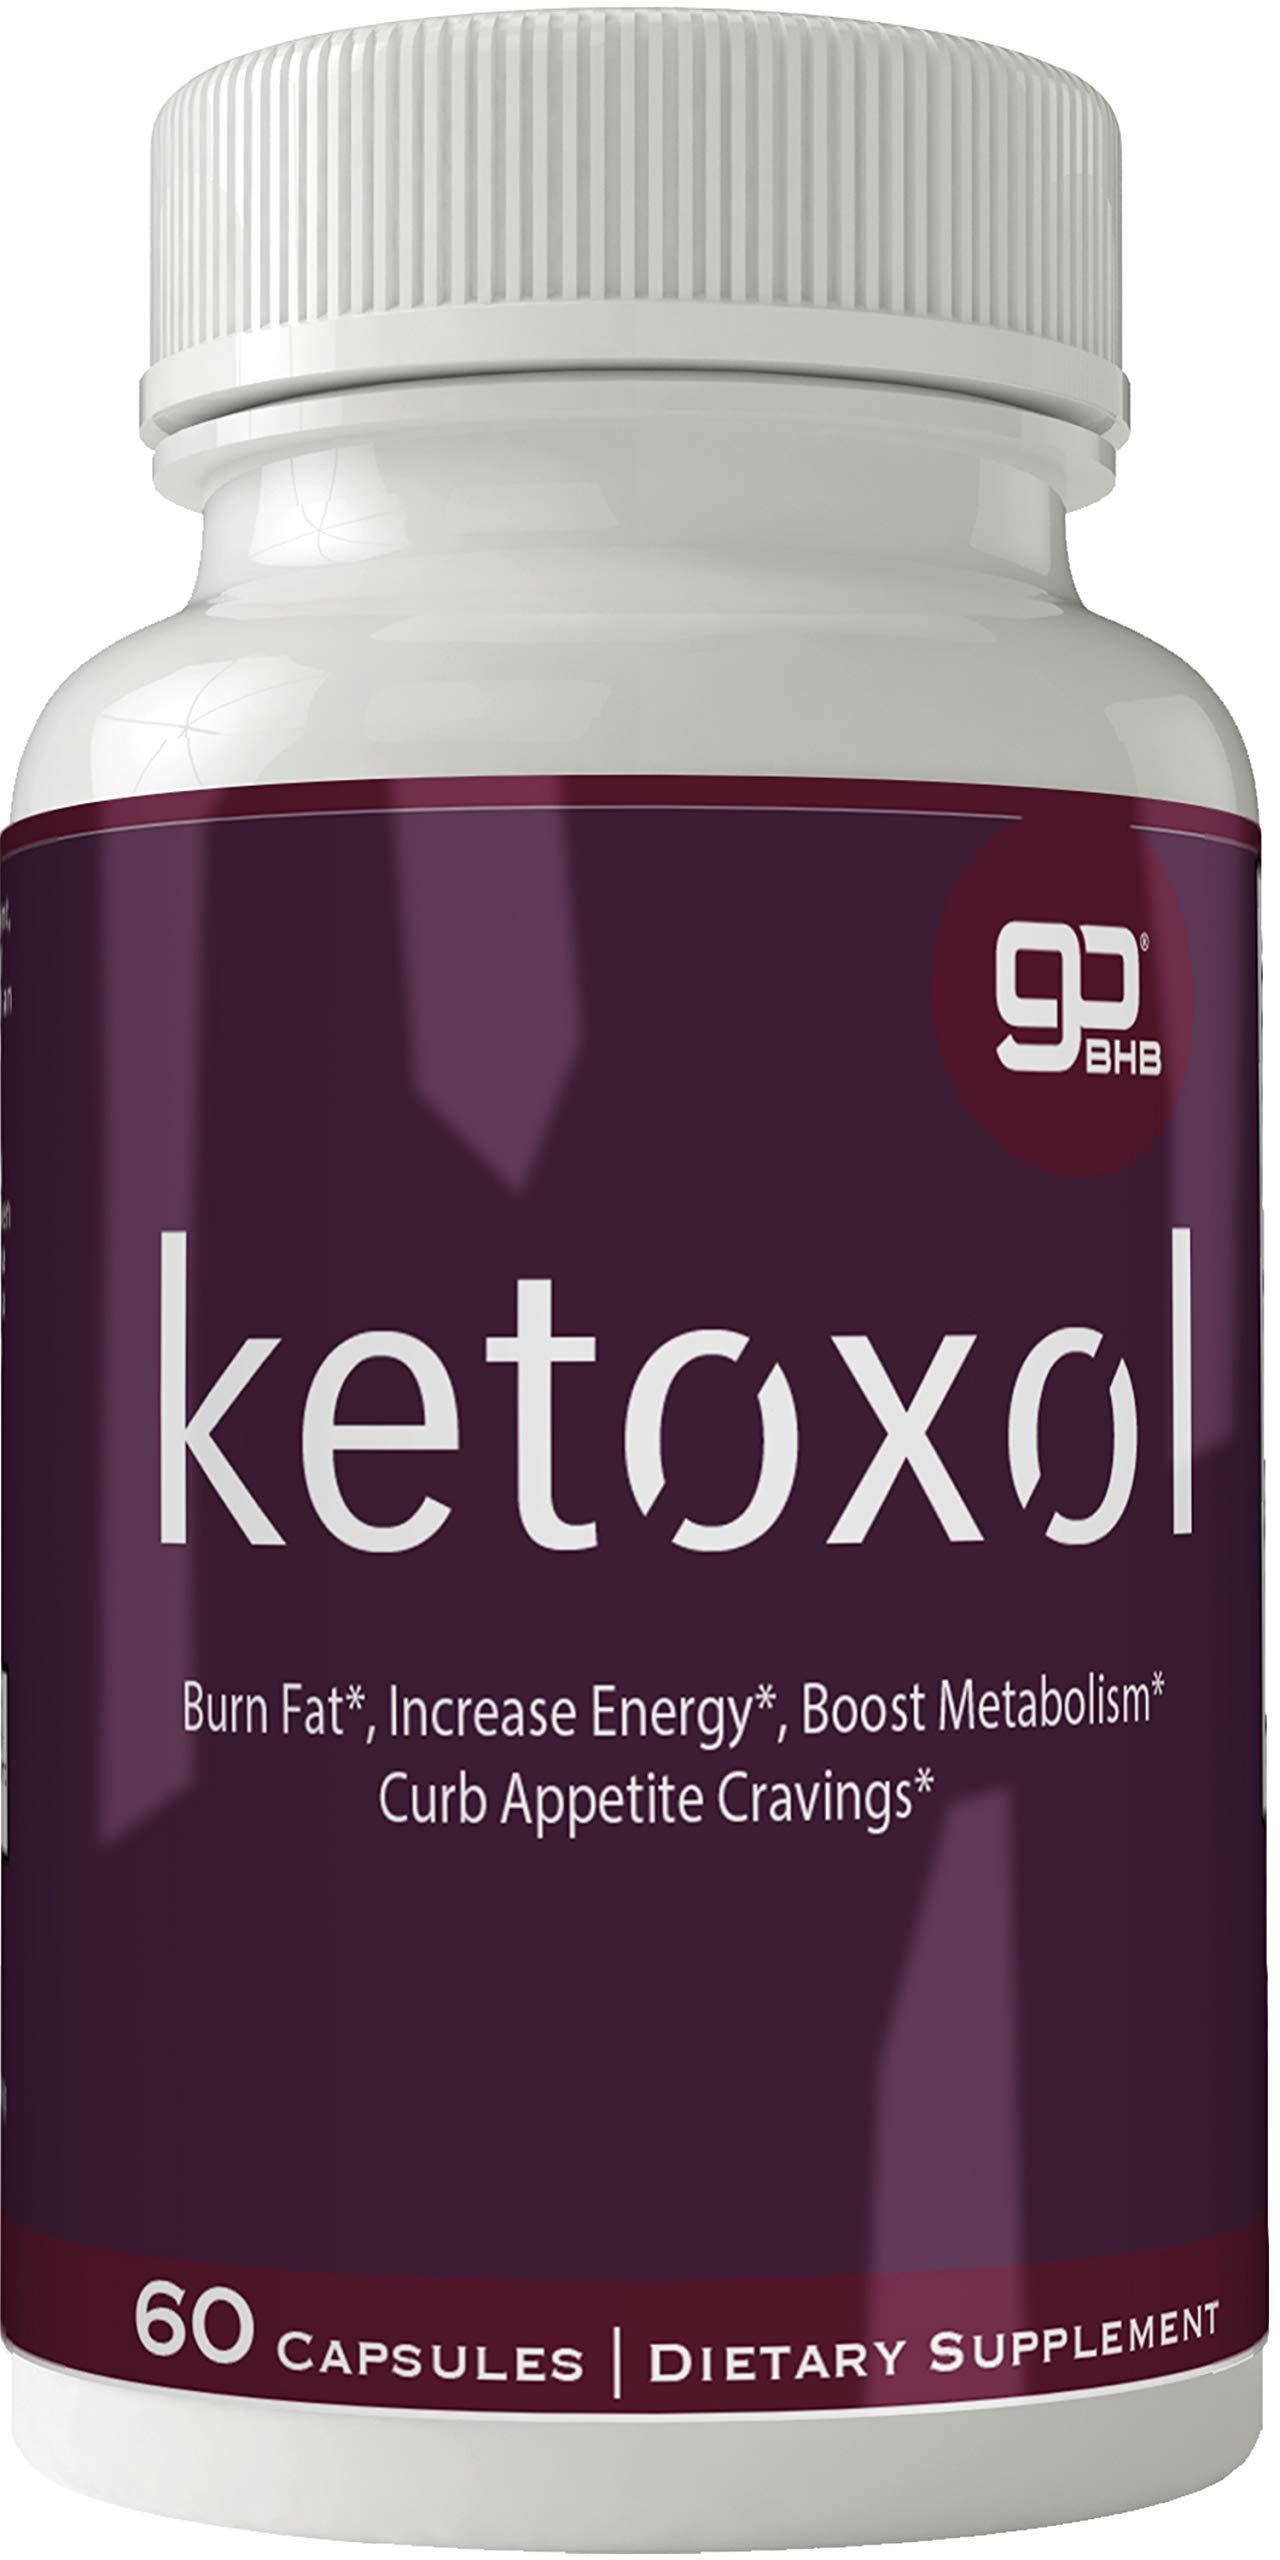 Ketoxol Natural Ketogenic Weight Loss Pills, BHB Burn Fat Supplement, 800 mg Formula with New True Slim GO BHB Salts Formula, Advanced Appetite Suppressant Capsules ... by nutra4health LLC